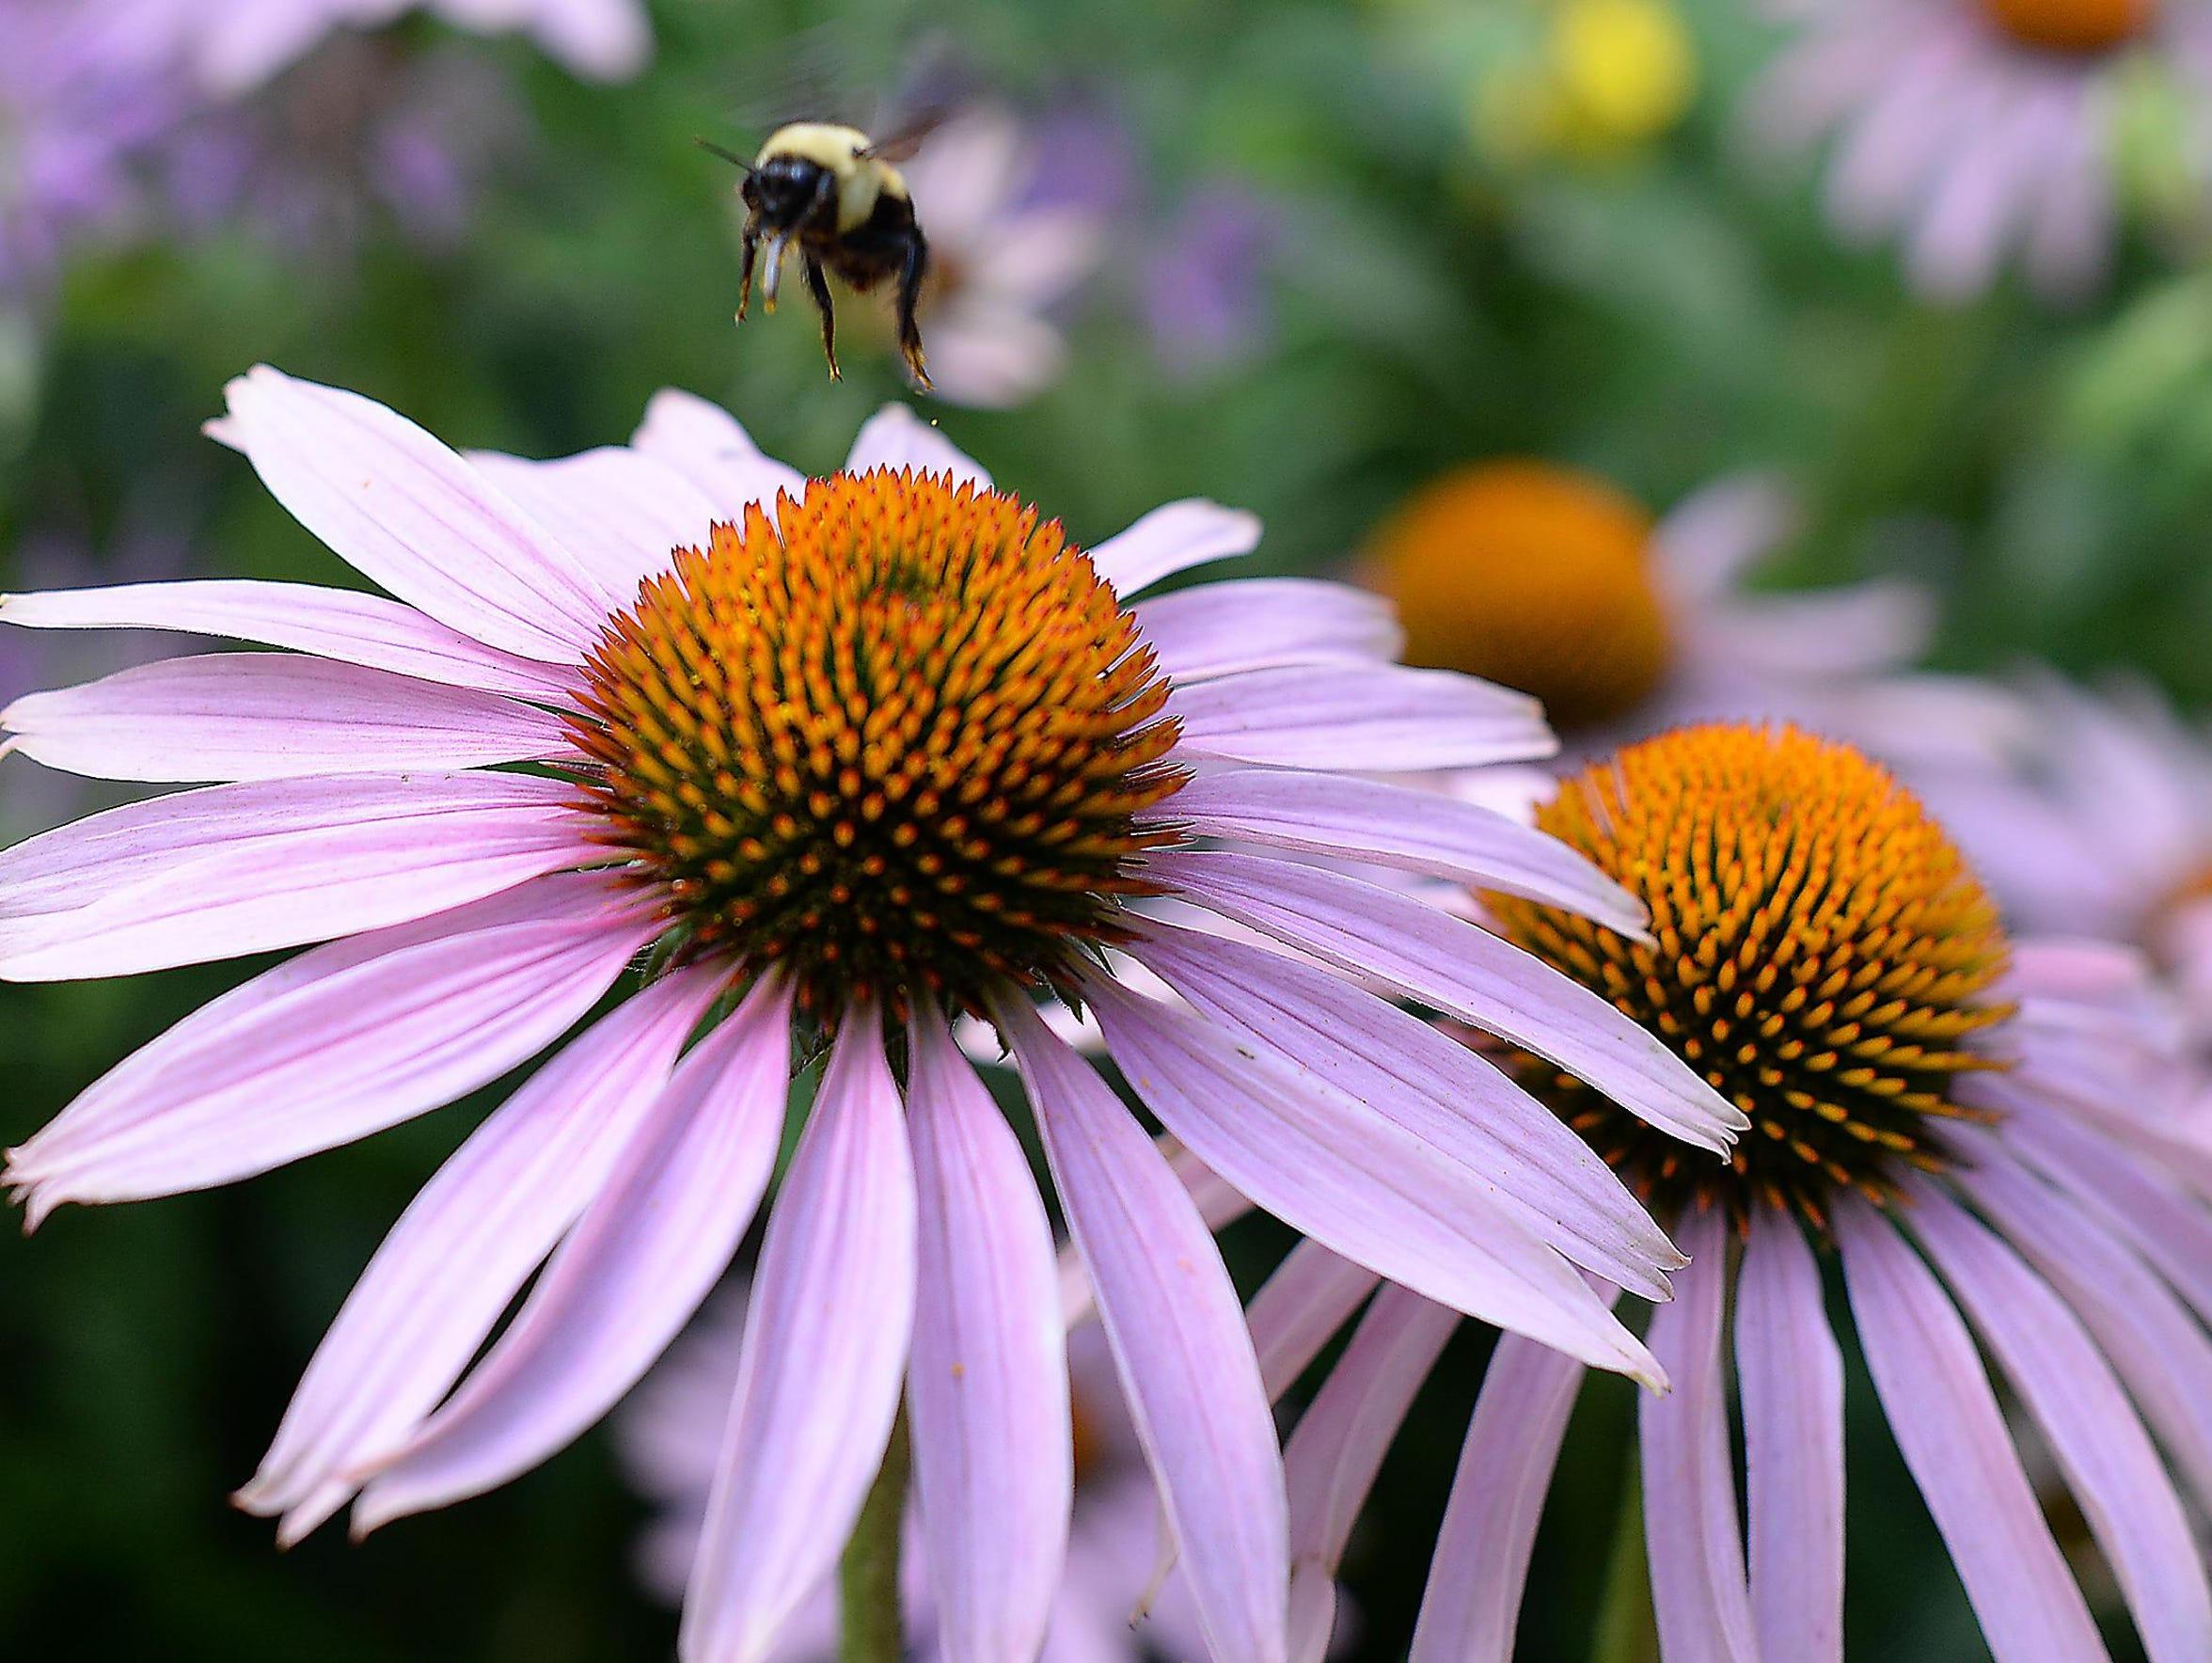 The Sikoras like purple coneflowers for their long